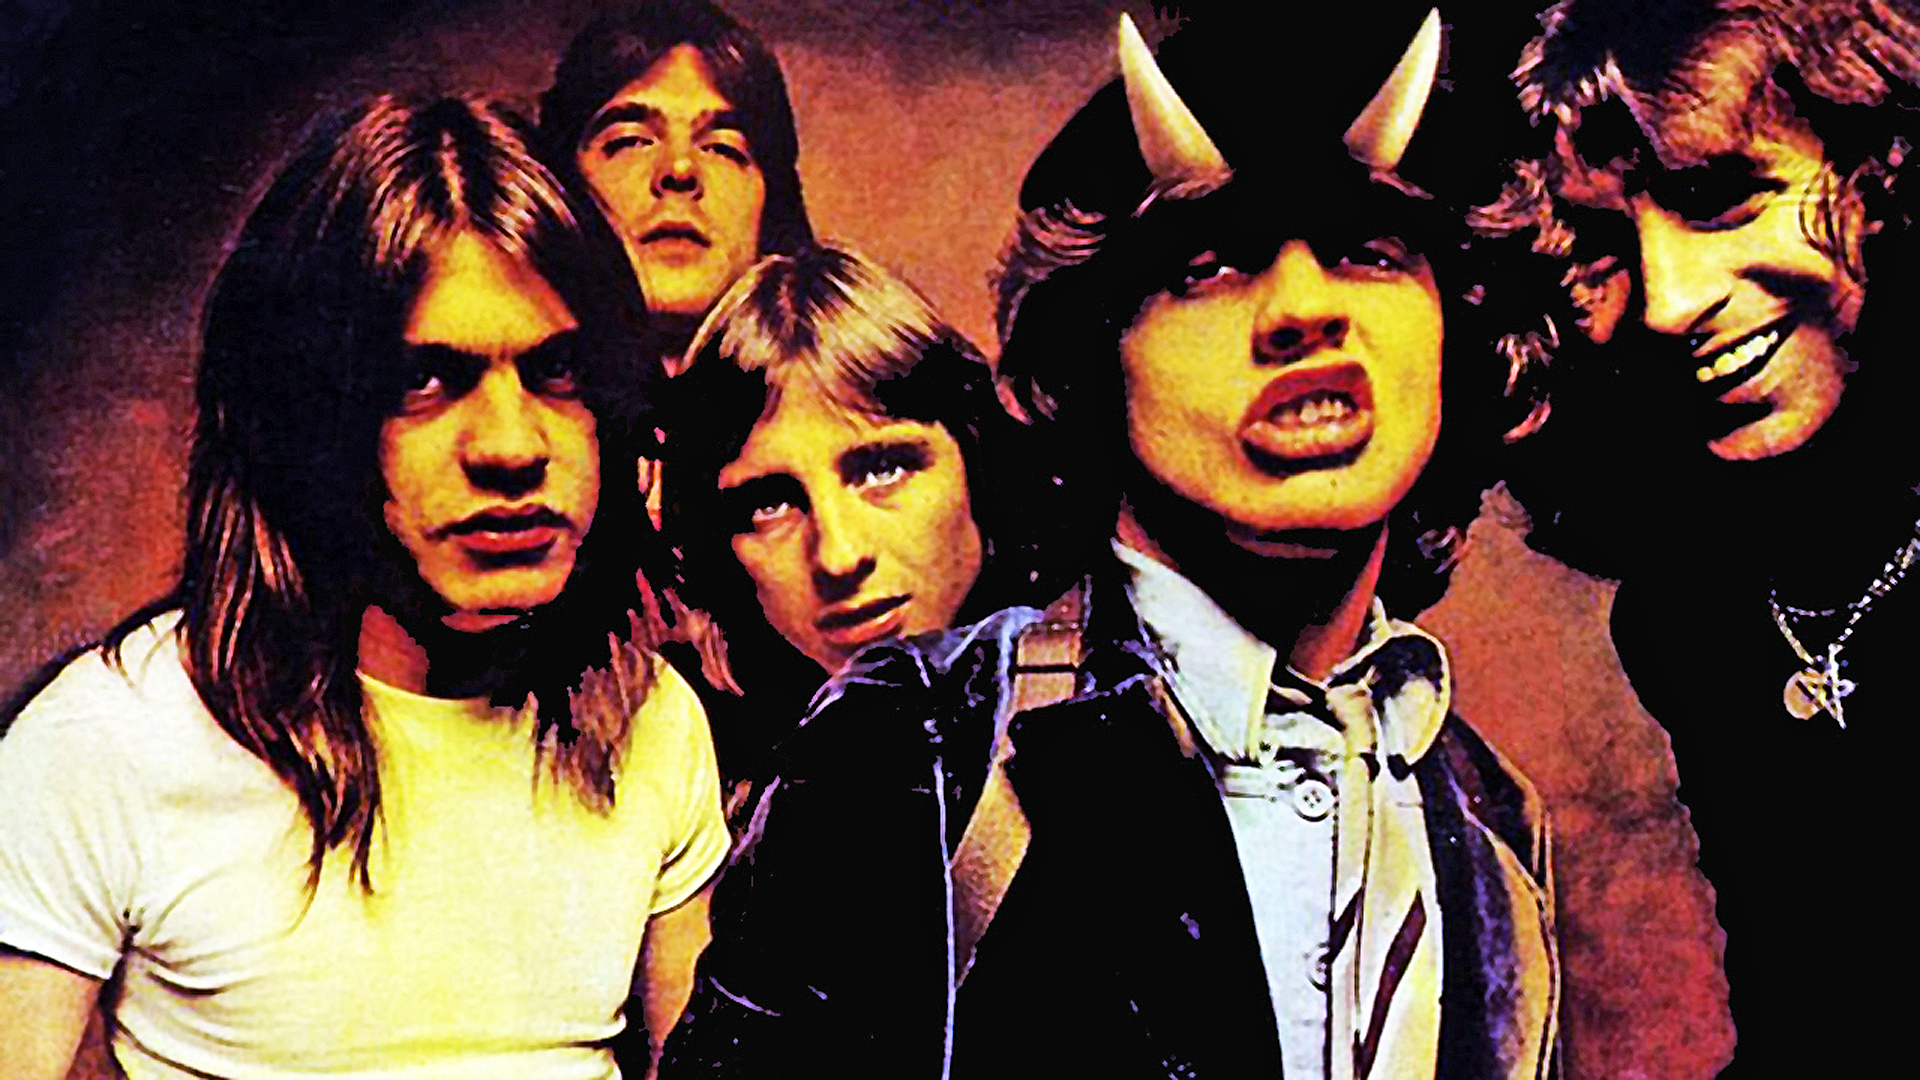 Middle Acdc Music Bands Album Covers Angus Young Hd Wallpapers